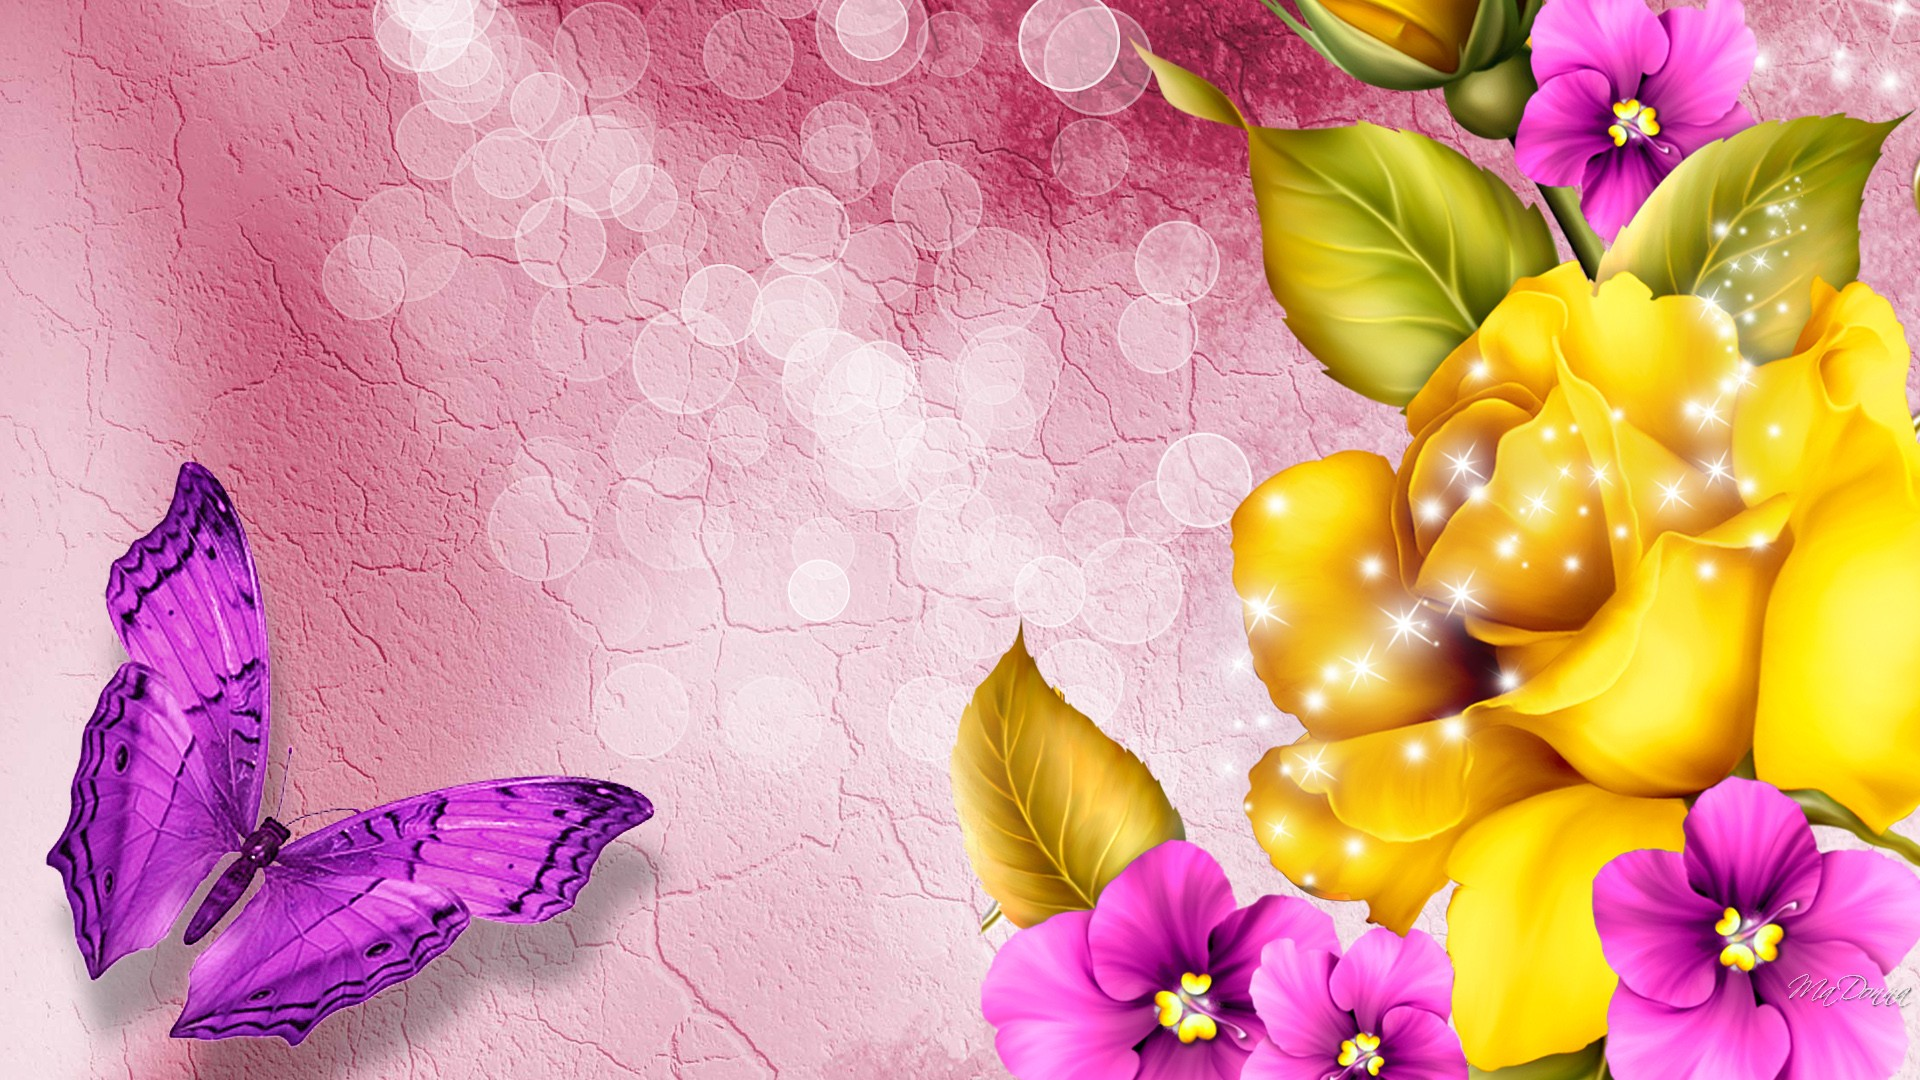 colorful flower hd wide wallpaper for widescreen (51 wallpapers